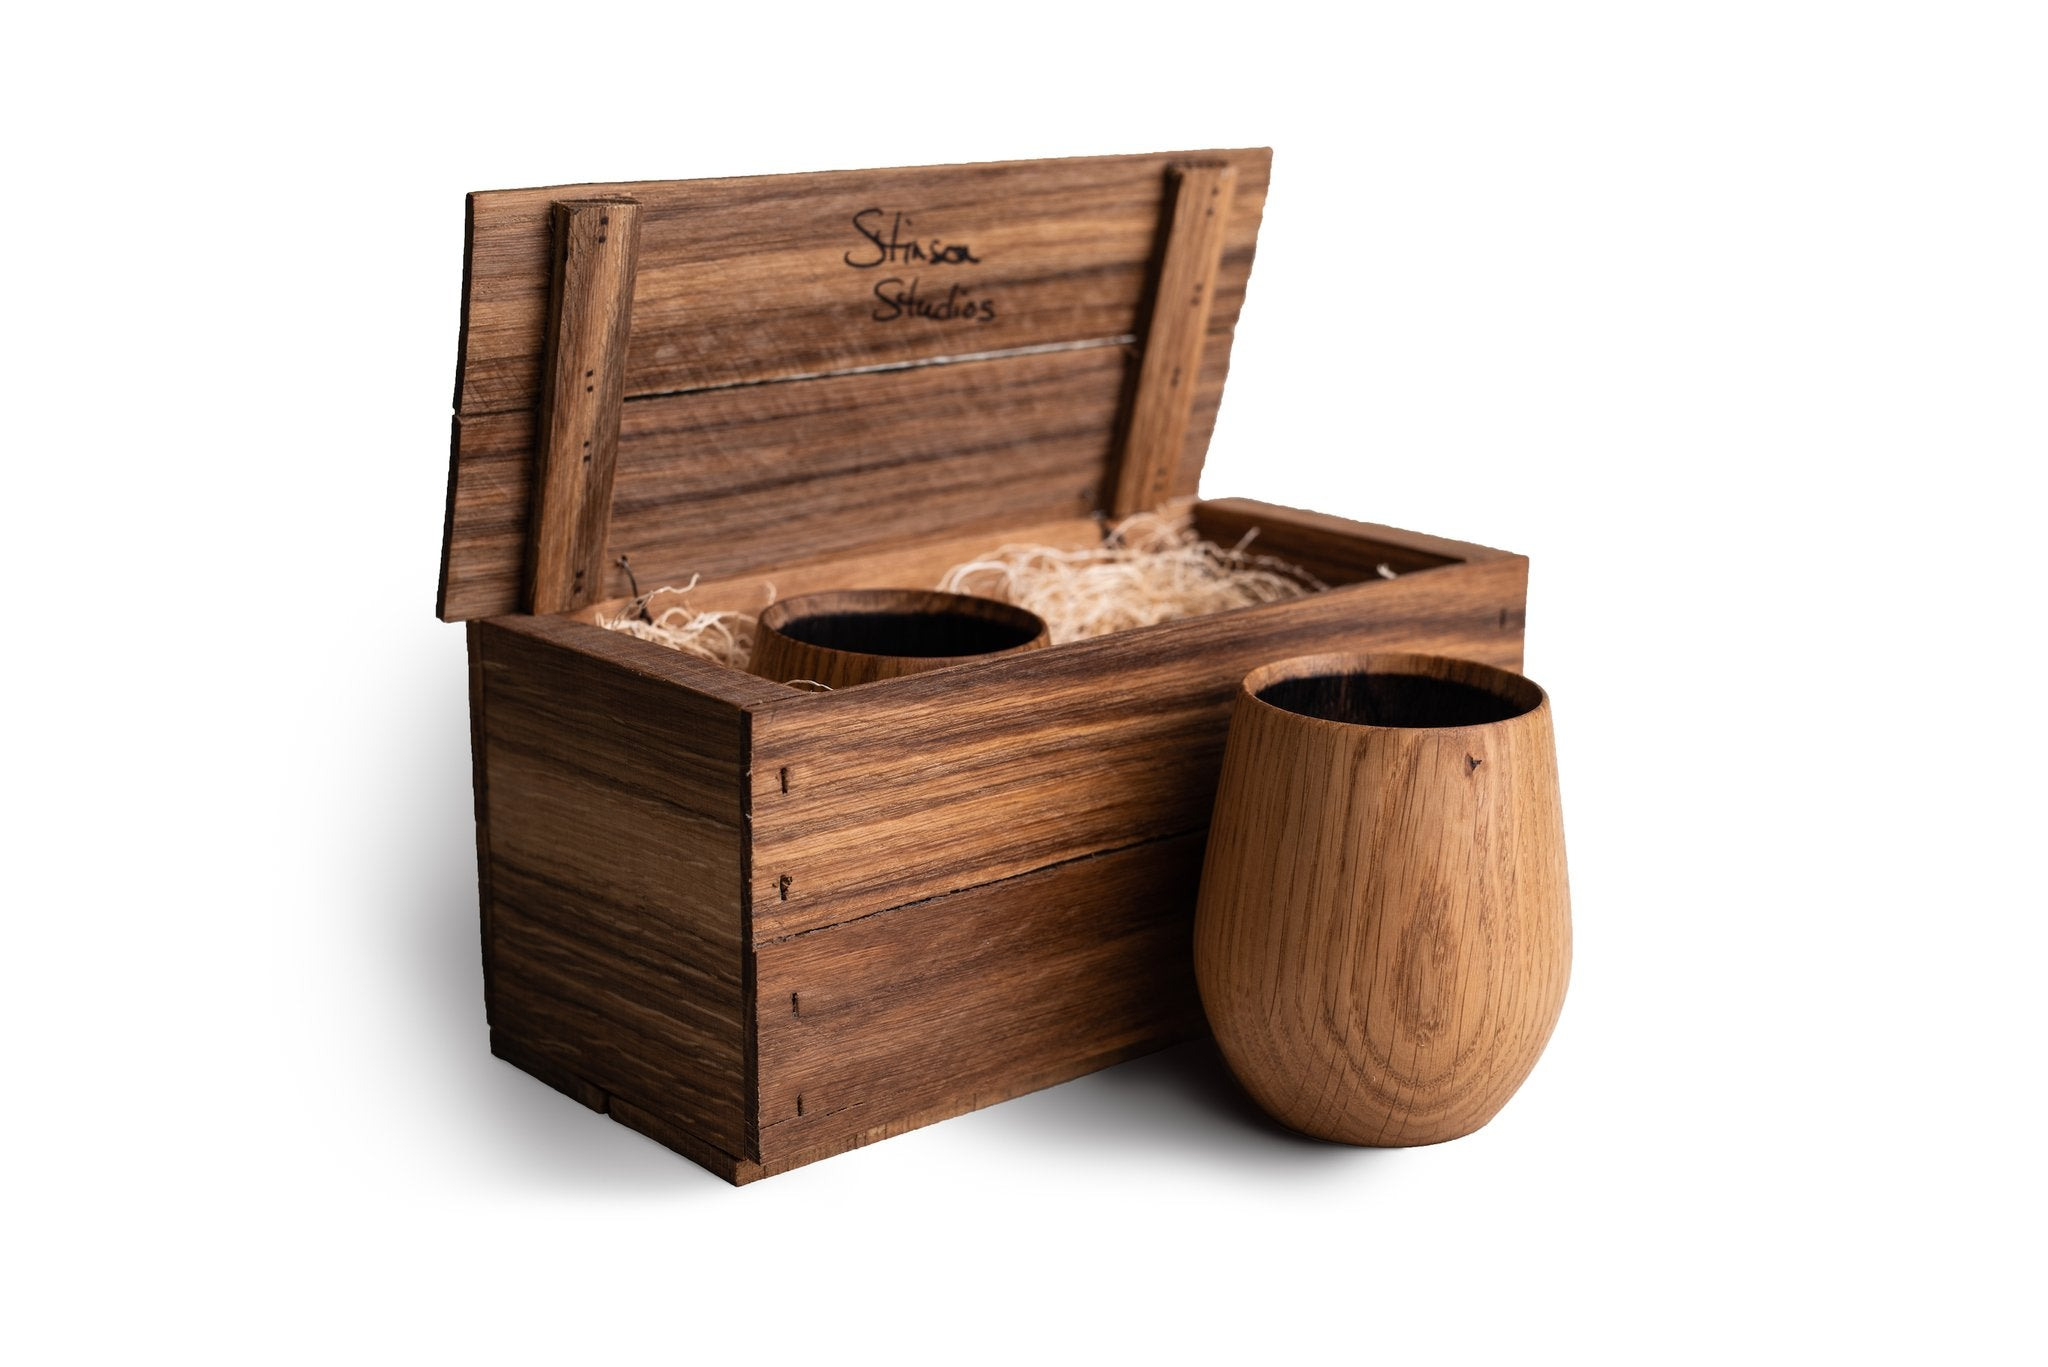 Wooden gift crate of two Made in Canada charred oak whiskey tumblers by Stinson Studios.